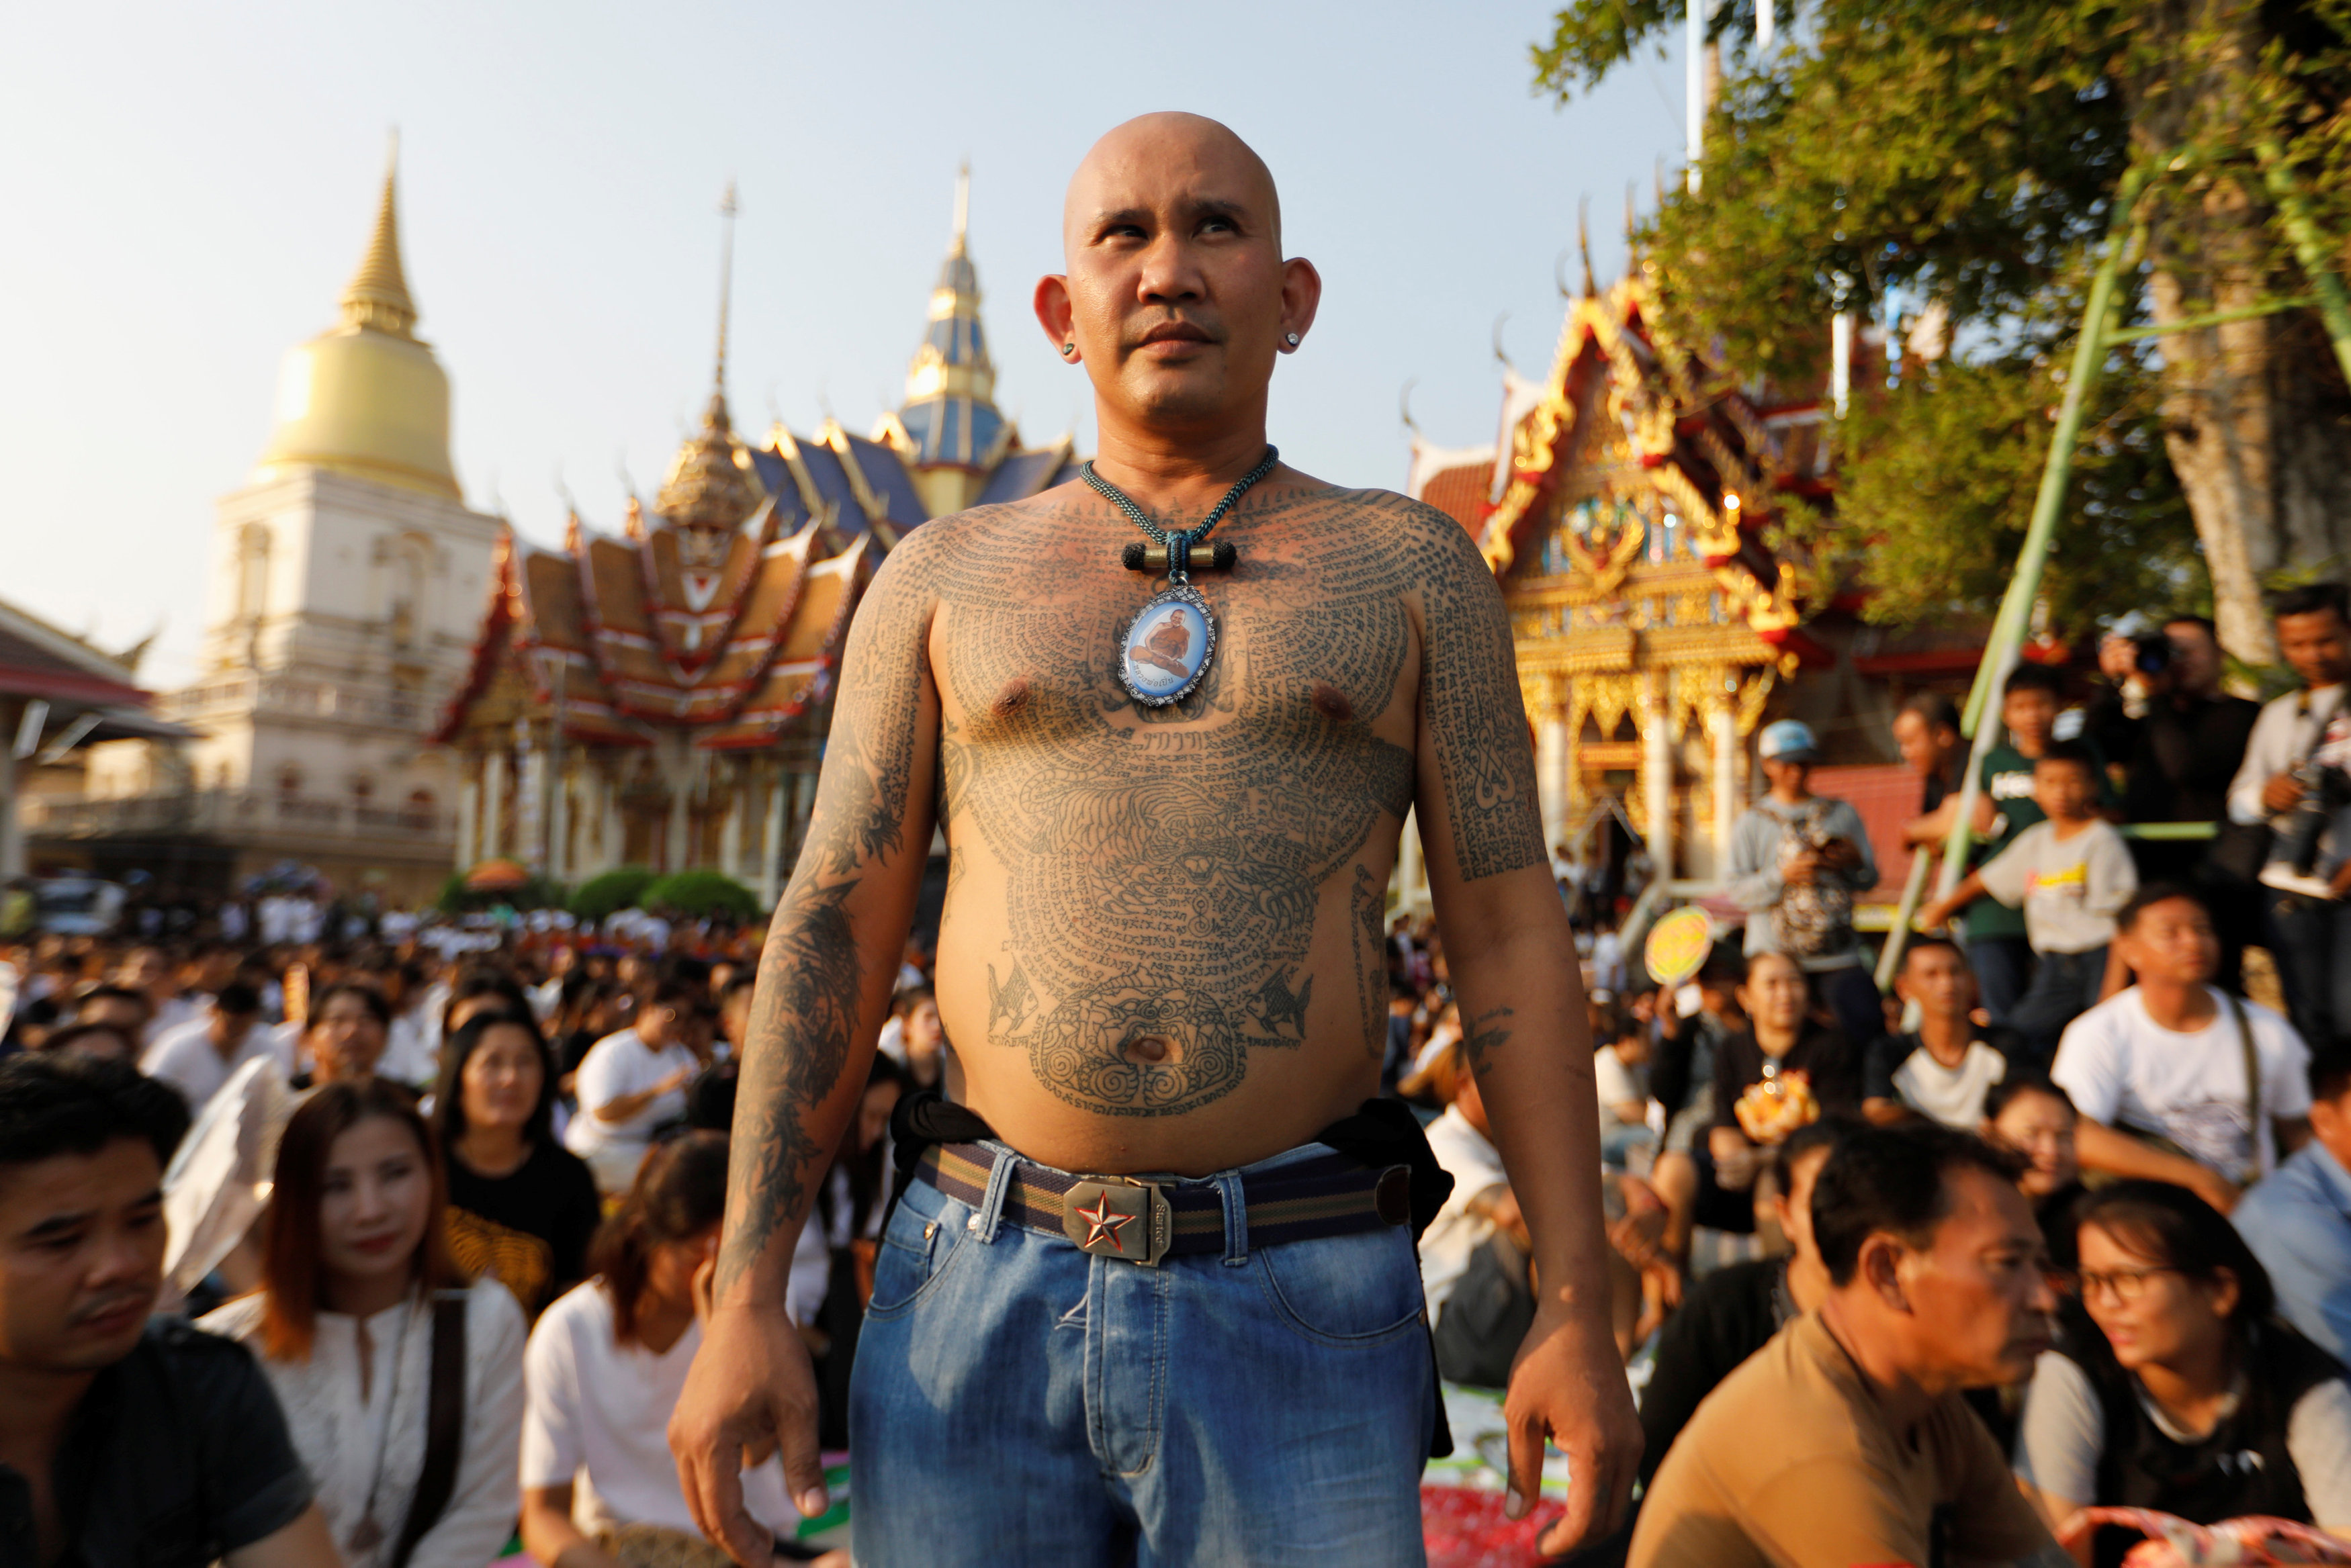 A devotee attends a religious tattoo festival at Wat Bang Phra, where devotees come to recharge the power of their sacred tattoos, in Nakhon Pathom province, Thailand, March 11, 2017. REUTERS/Jorge Silva